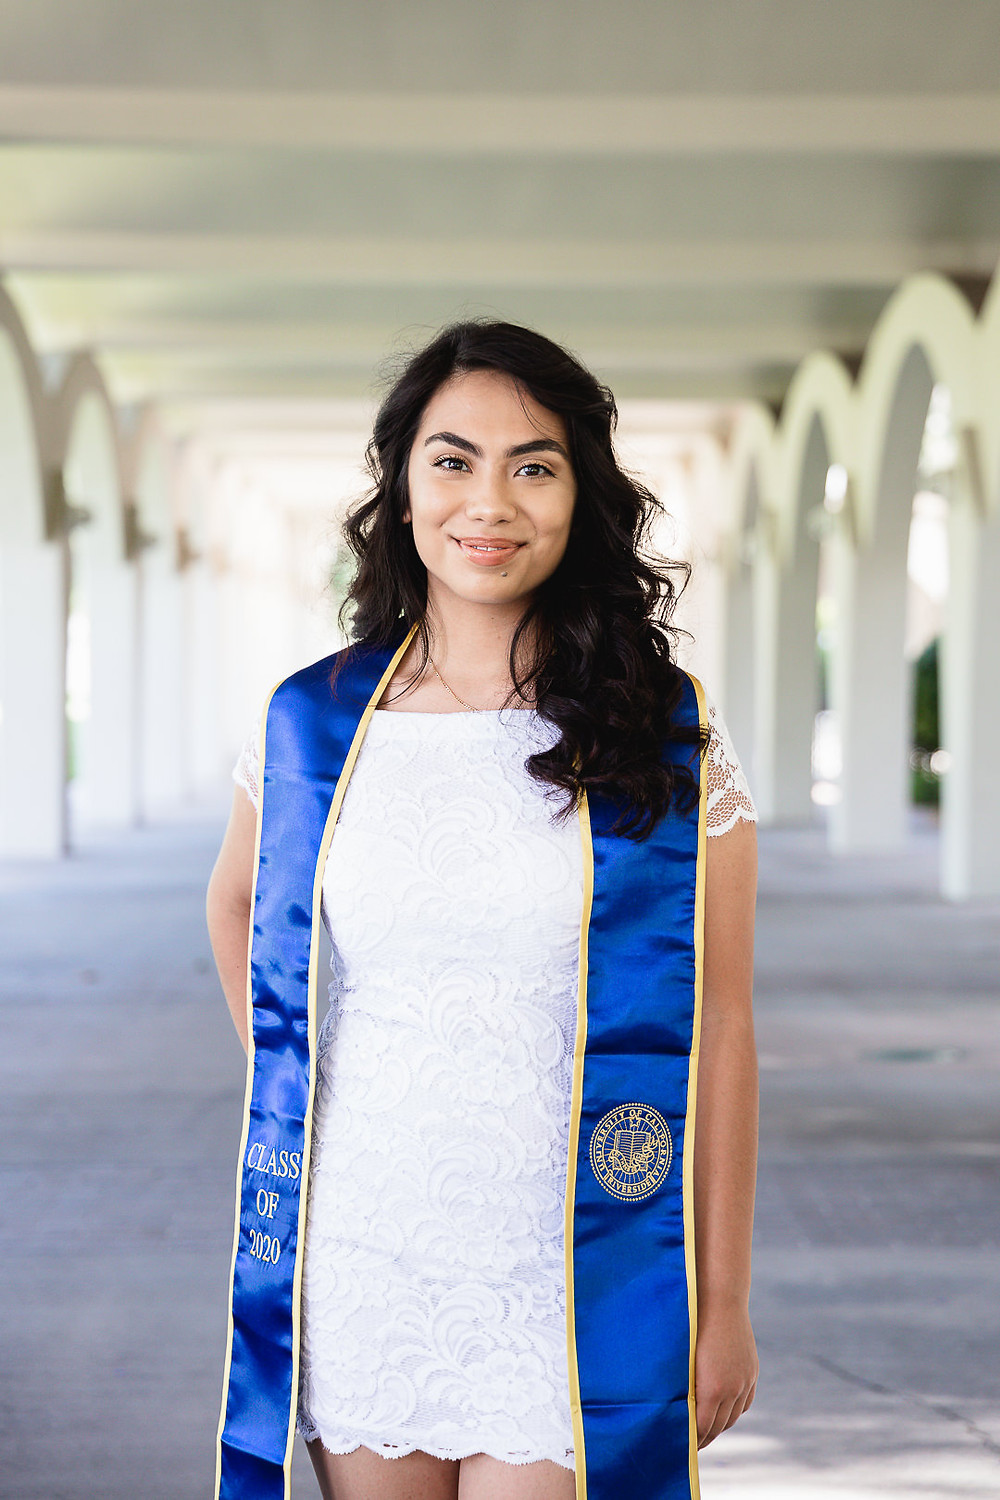 University of California Riverside Graduation Photos | Ashley 2